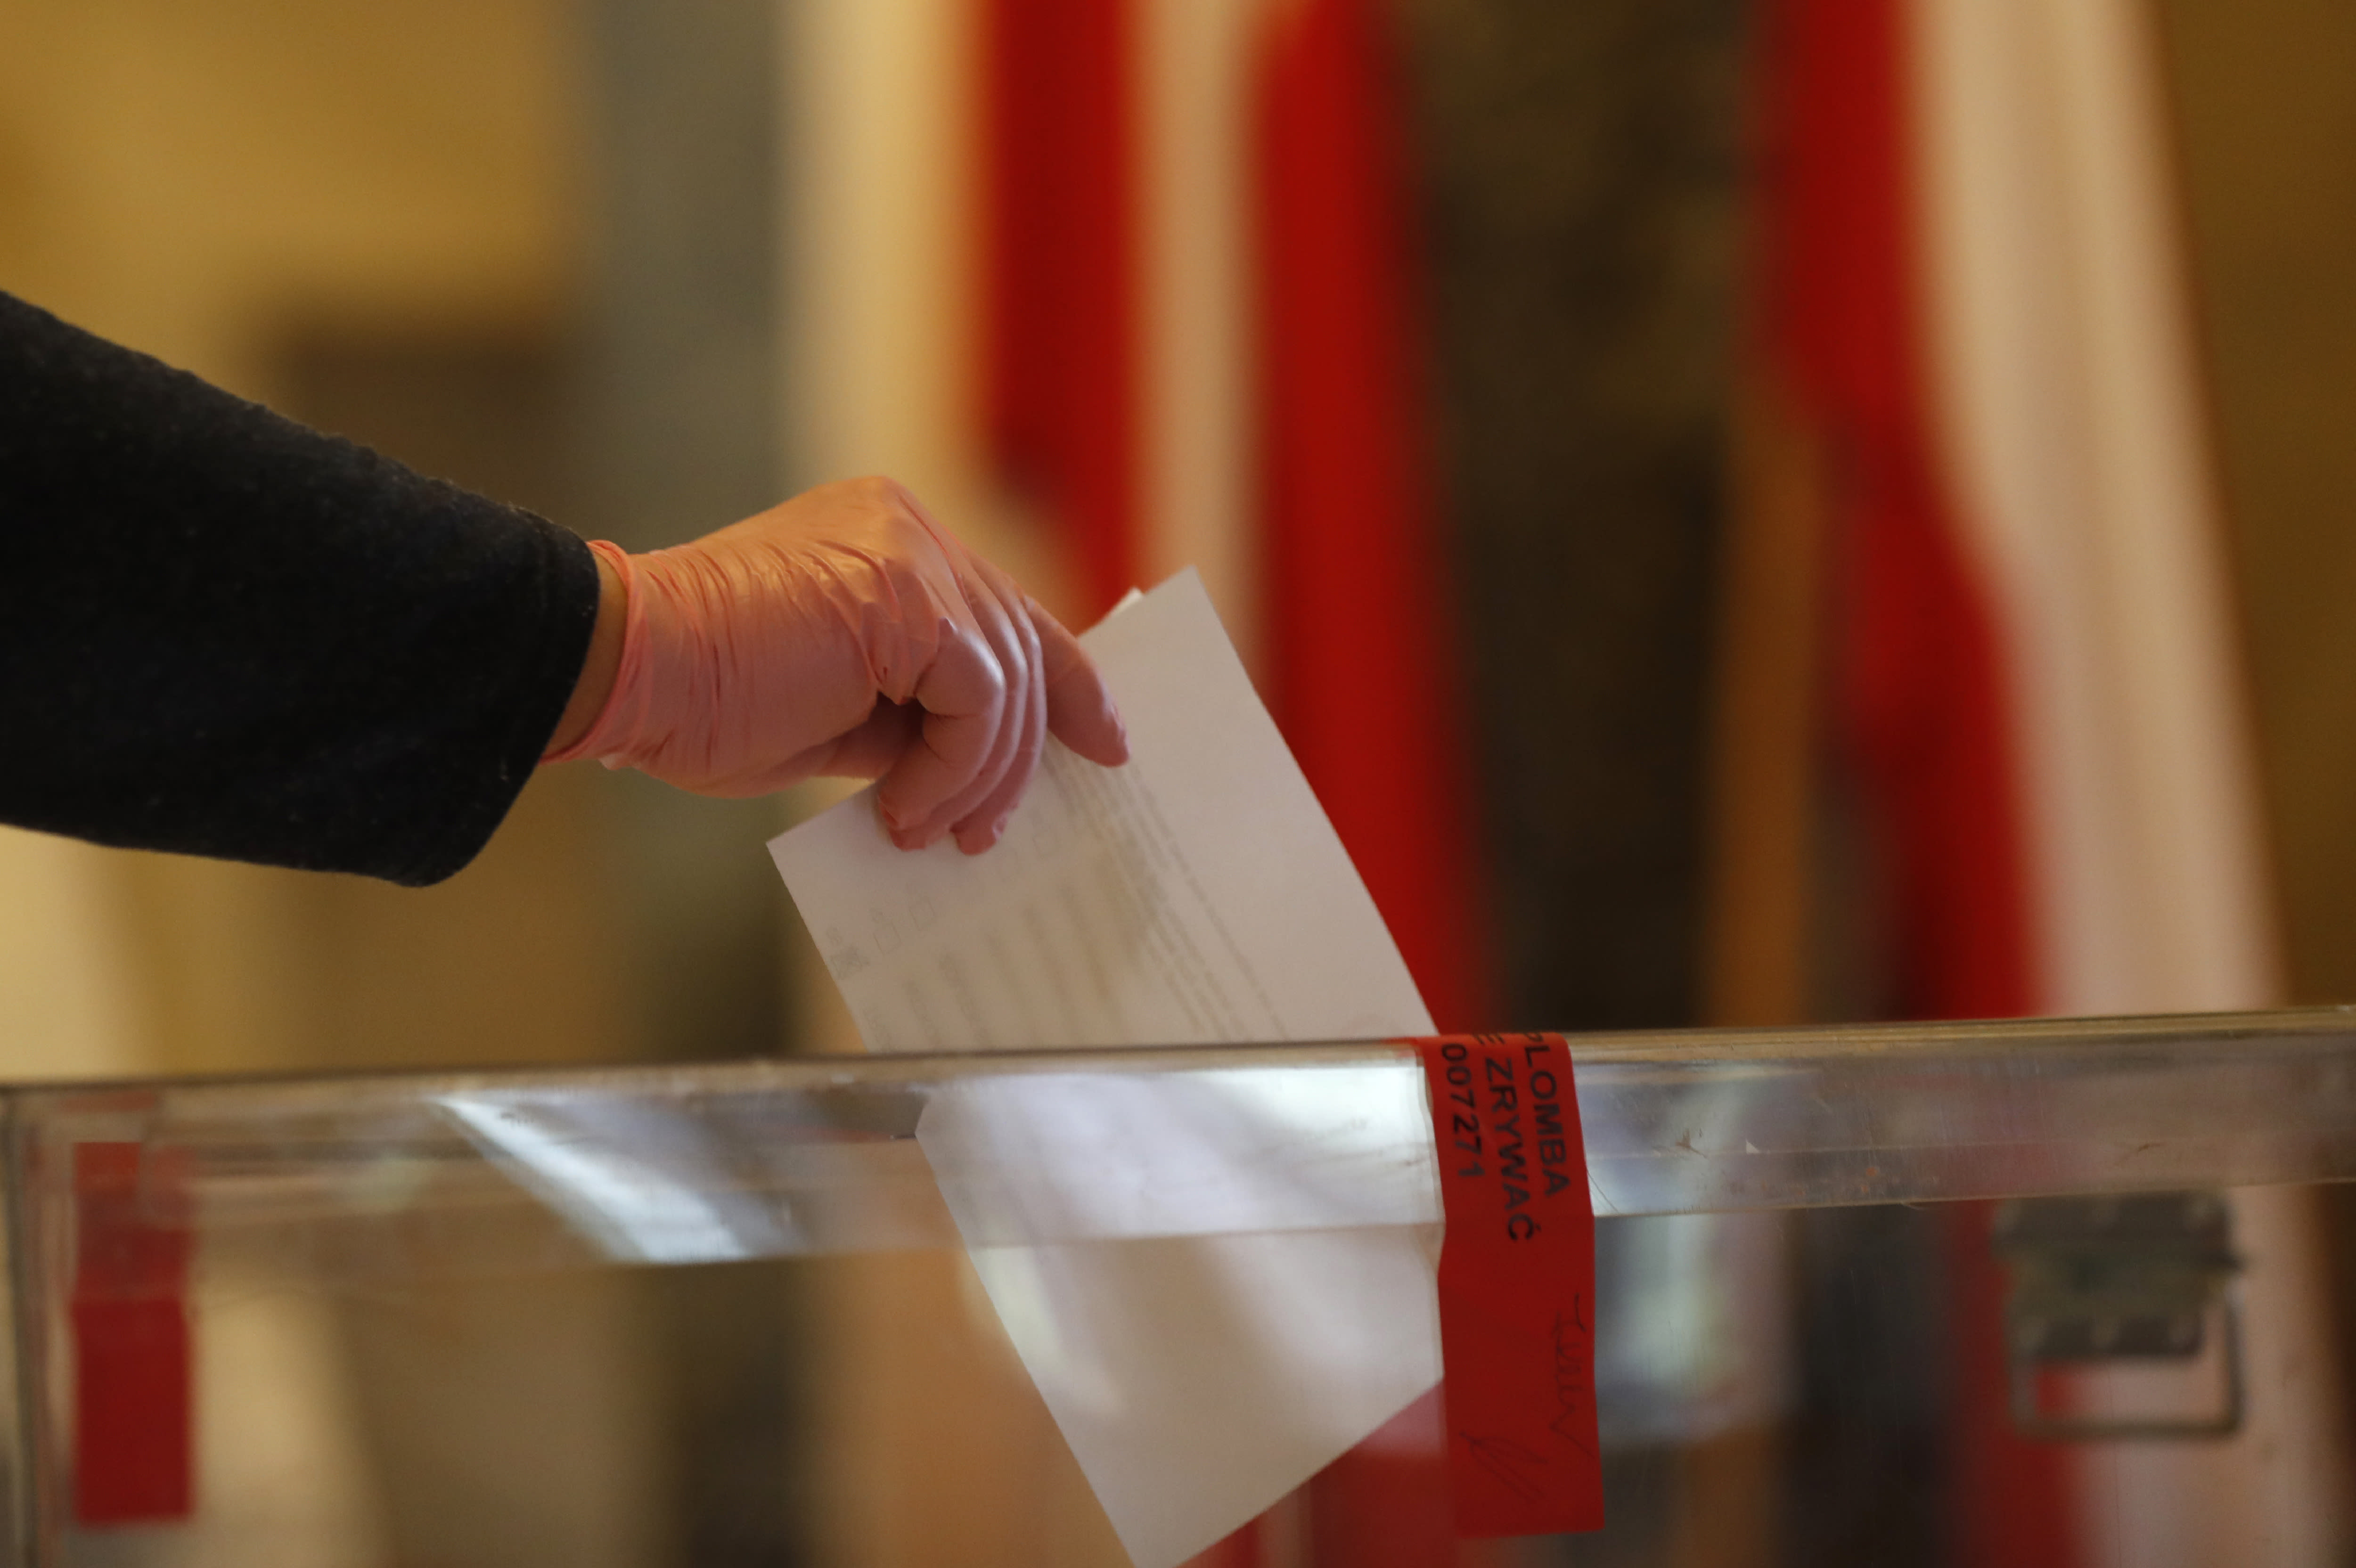 A resident, wearing protective gloves, casts a vote during presidential election in Warsaw, Poland, Sunday, June 28, 2020. The election will test the popularity of incumbent President Andrzej Duda who is seeking a second term and of the conservative ruling party that backs him. (AP Photo/Petr David Josek)